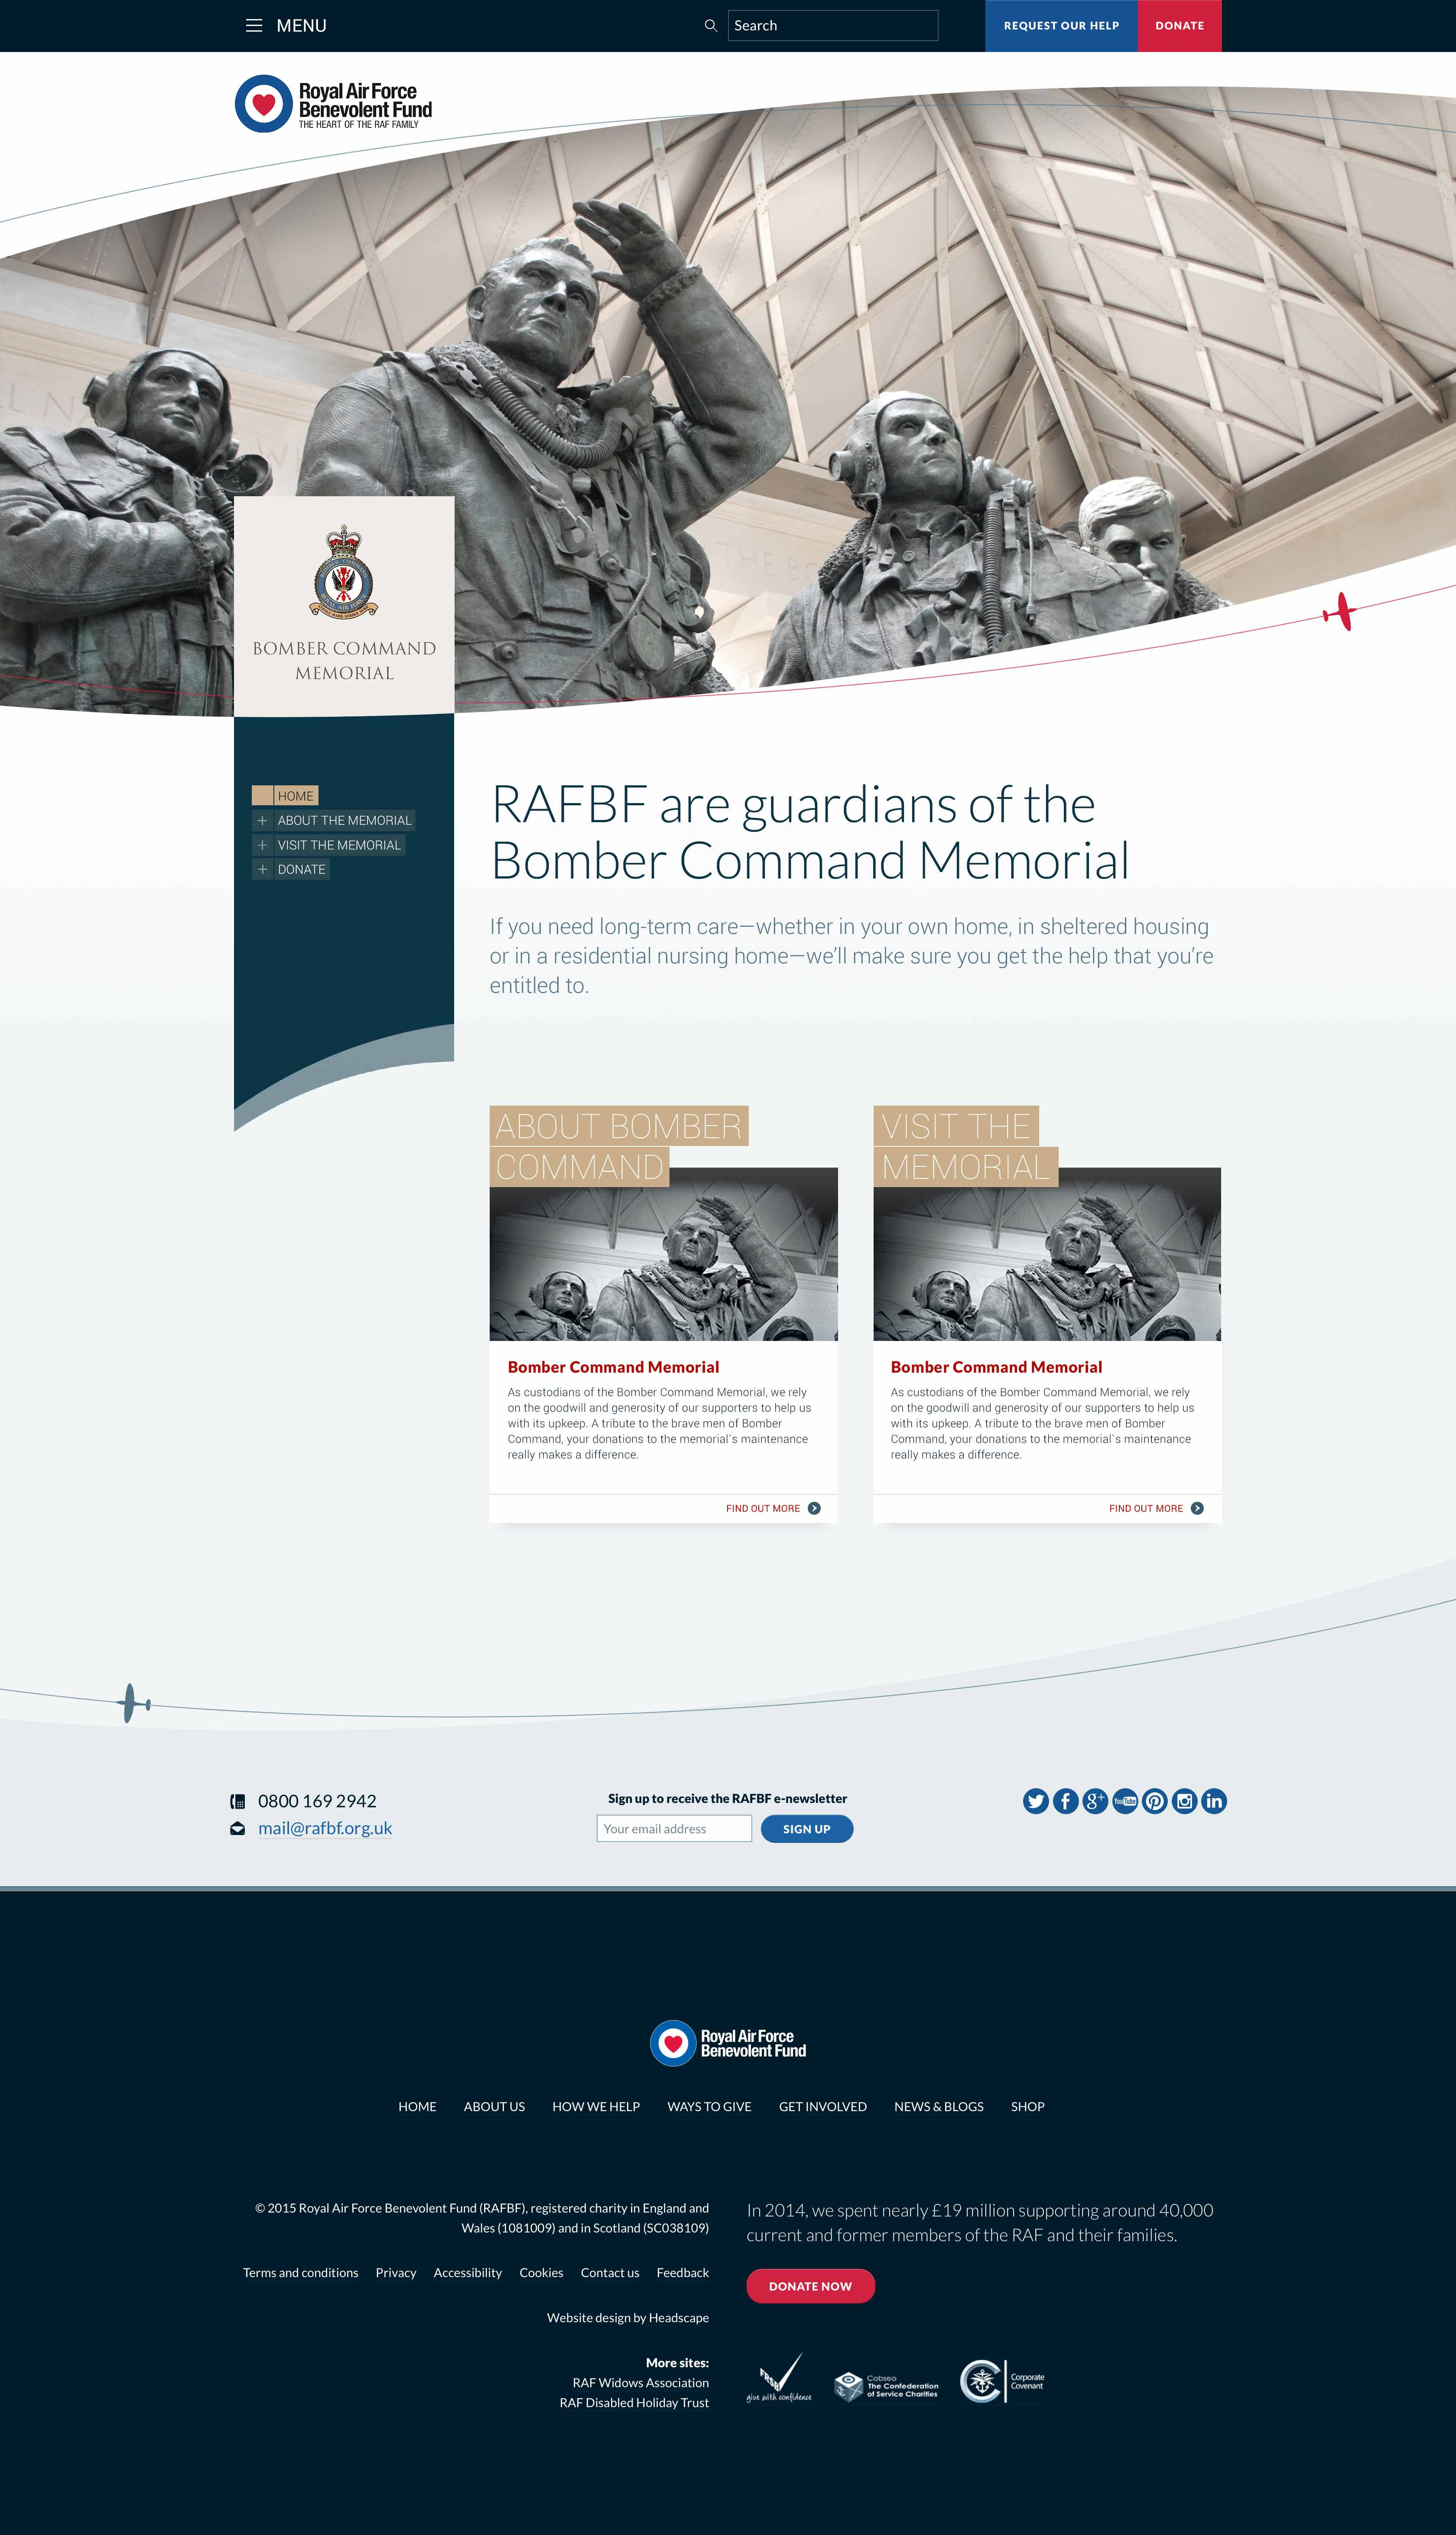 Royal Air Force Benevolent Fund - Website design